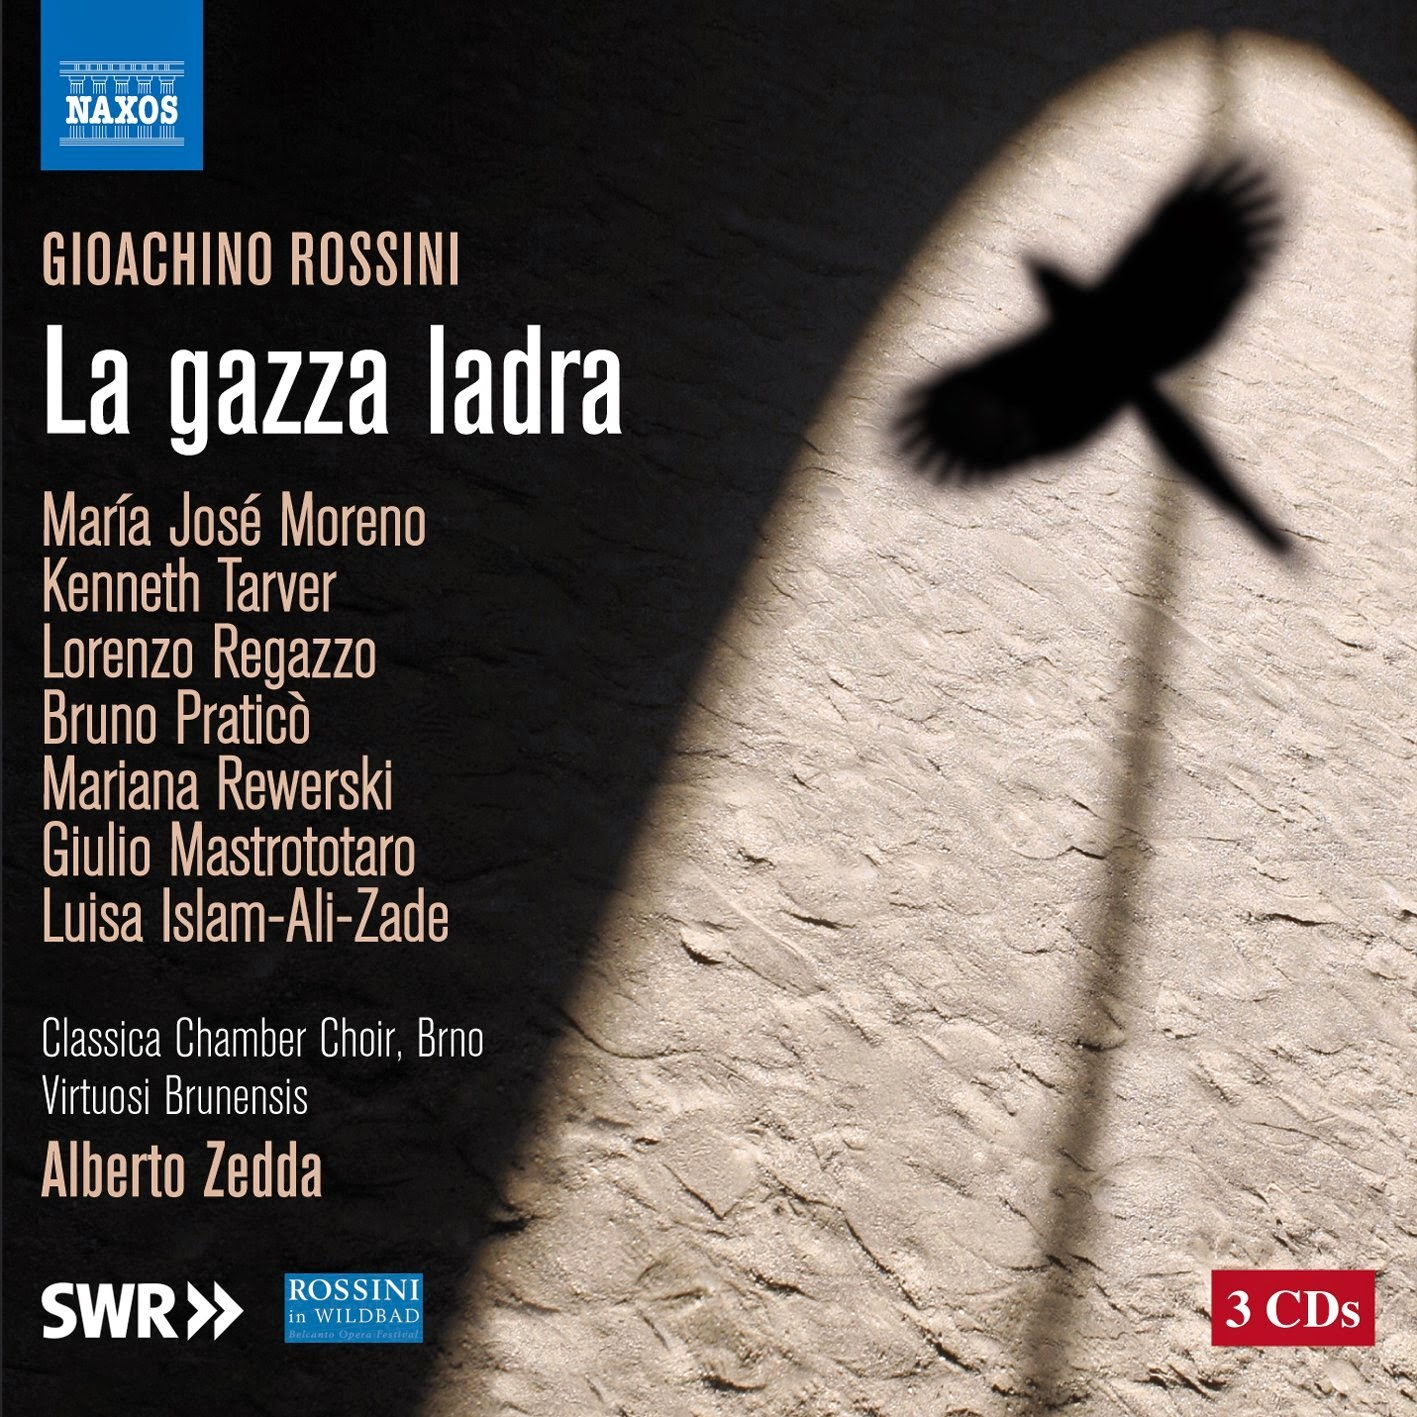 CD REVIEW: Gioachino Rossini - LA GAZZA LADRA (NAXOS 8.660369-71)